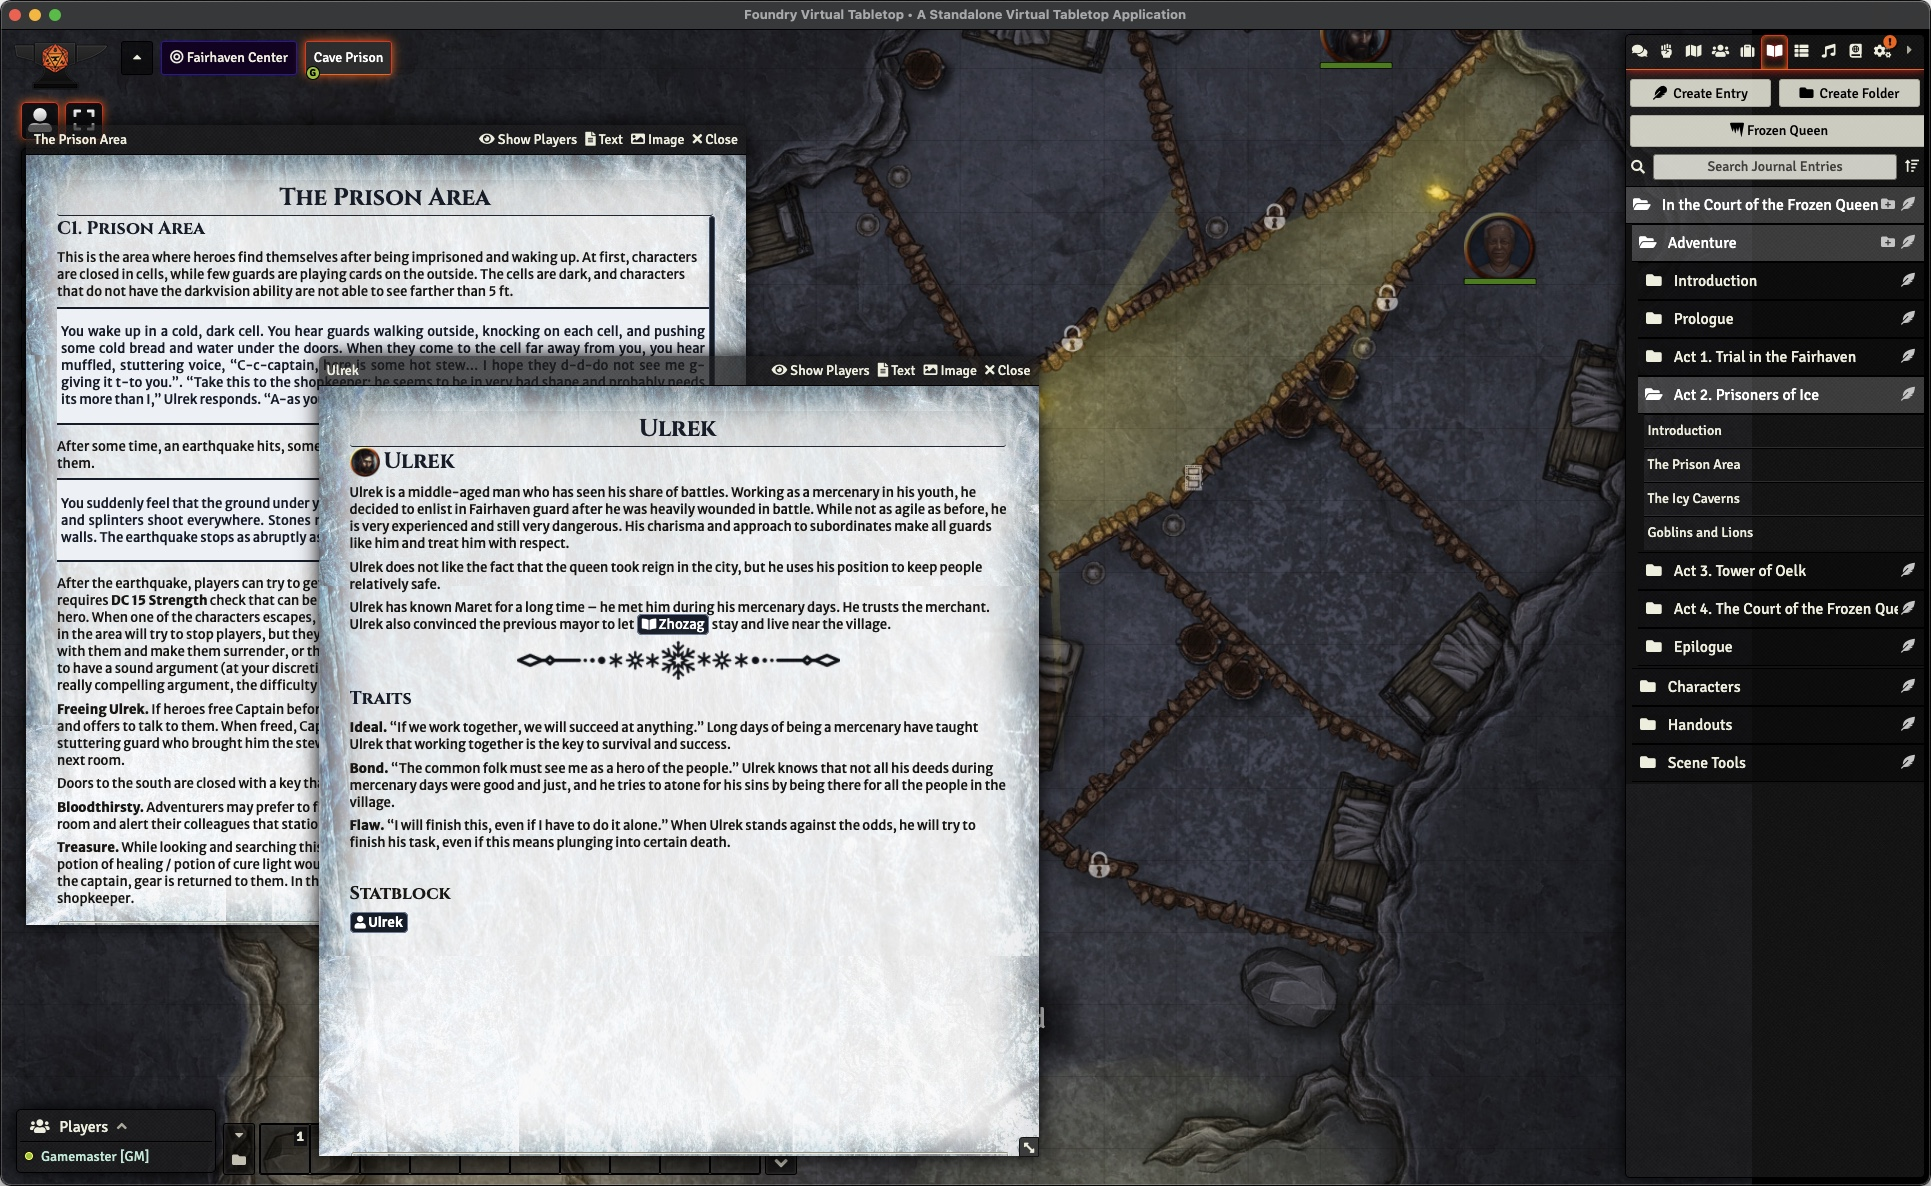 A screenshot depicting a temple scene with an open Landing Page